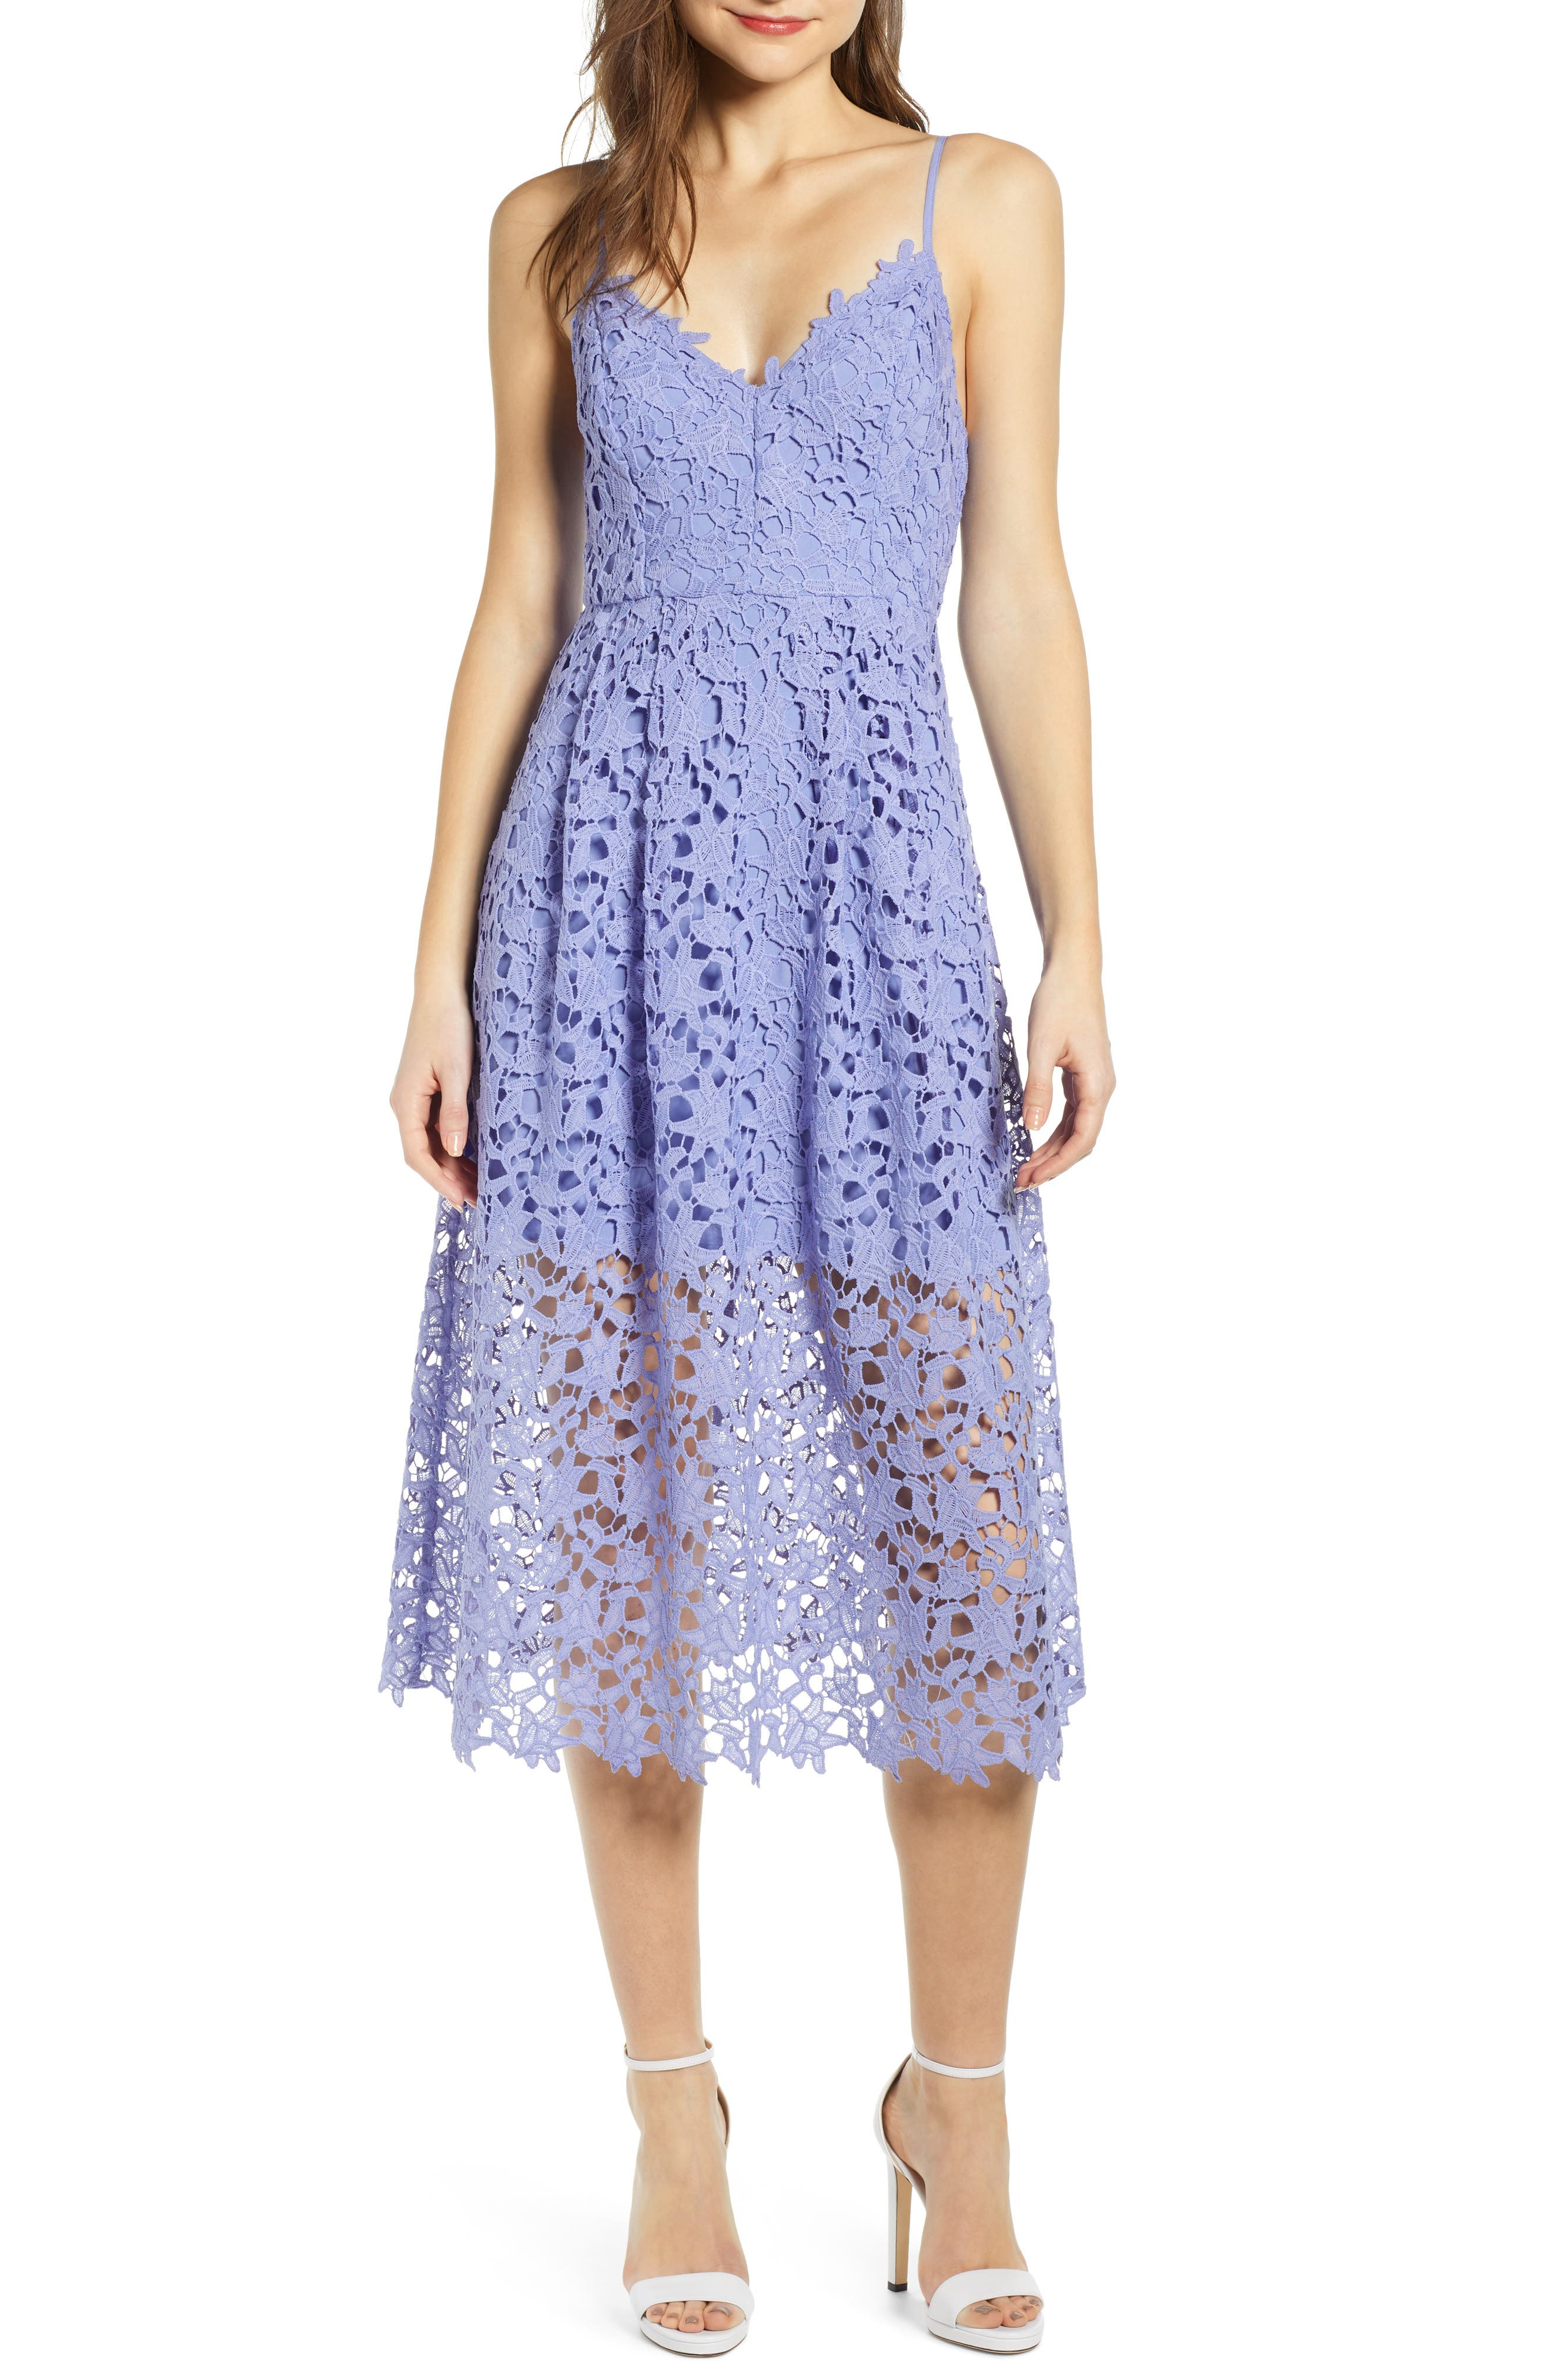 ASTR THE LABEL, Lace Midi Dress, Main thumbnail 1, color, LAVENDER